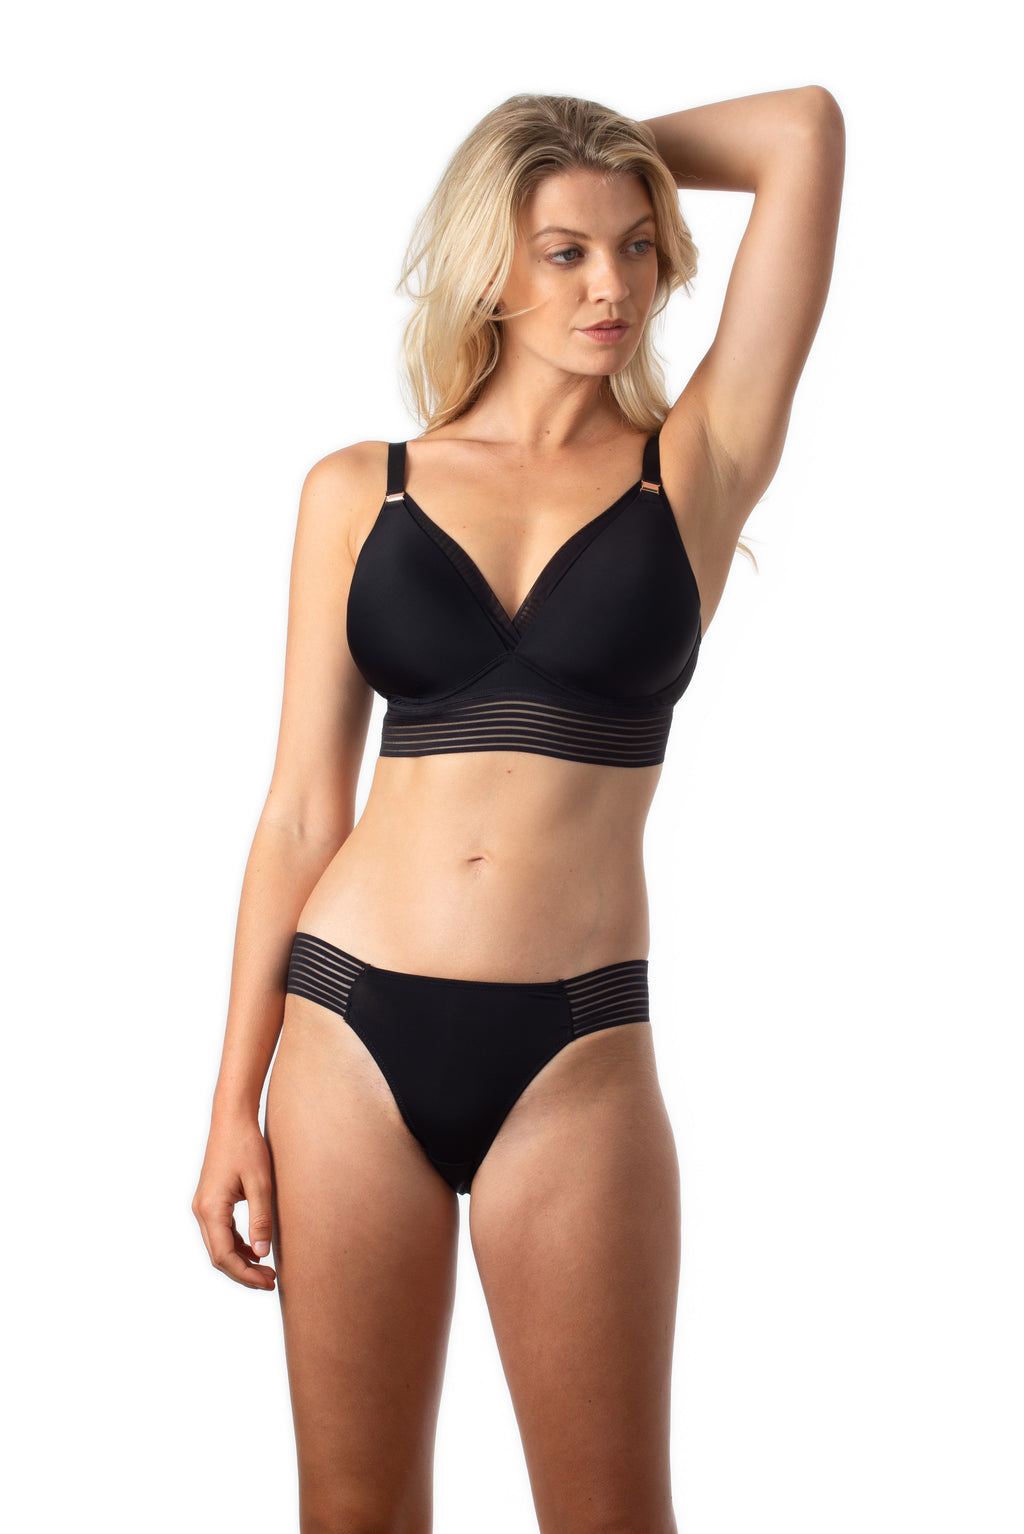 AMBITION CONTOUR BLACK NURSING BRA - WIREFREE